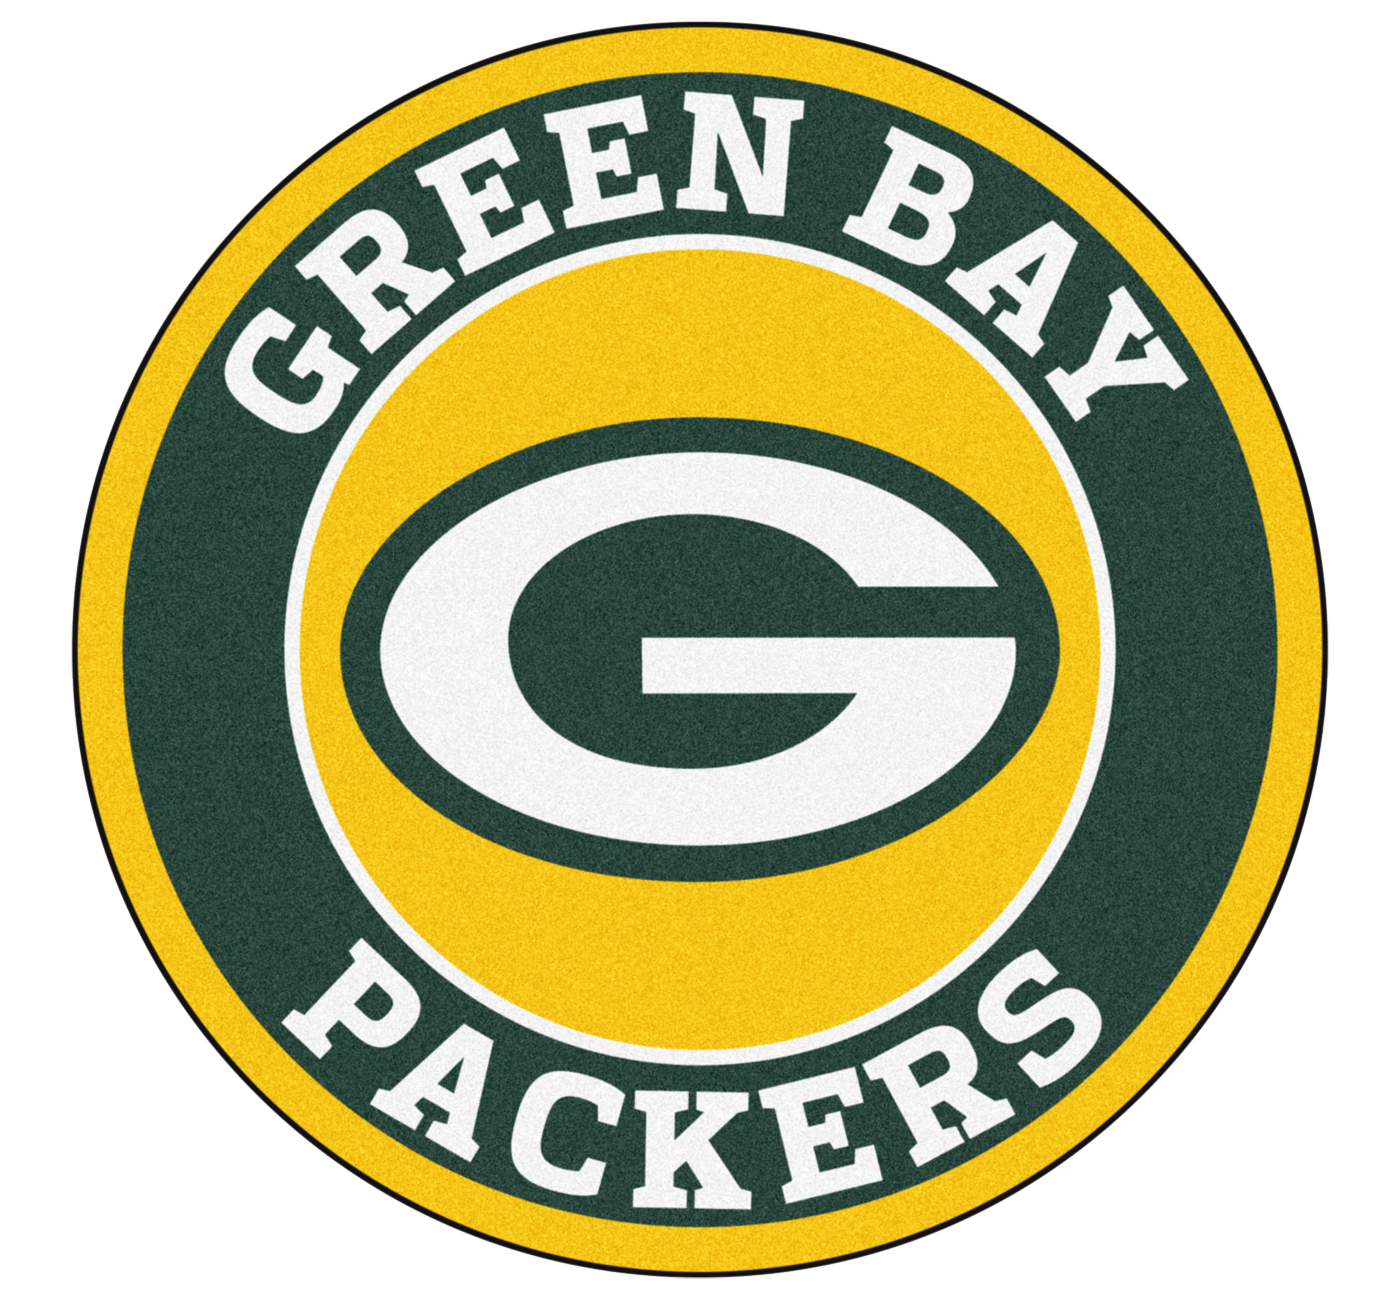 Green Bay Packers Logo Green Bay Packers Logo Green Bay Packers Team Nfl Green Bay